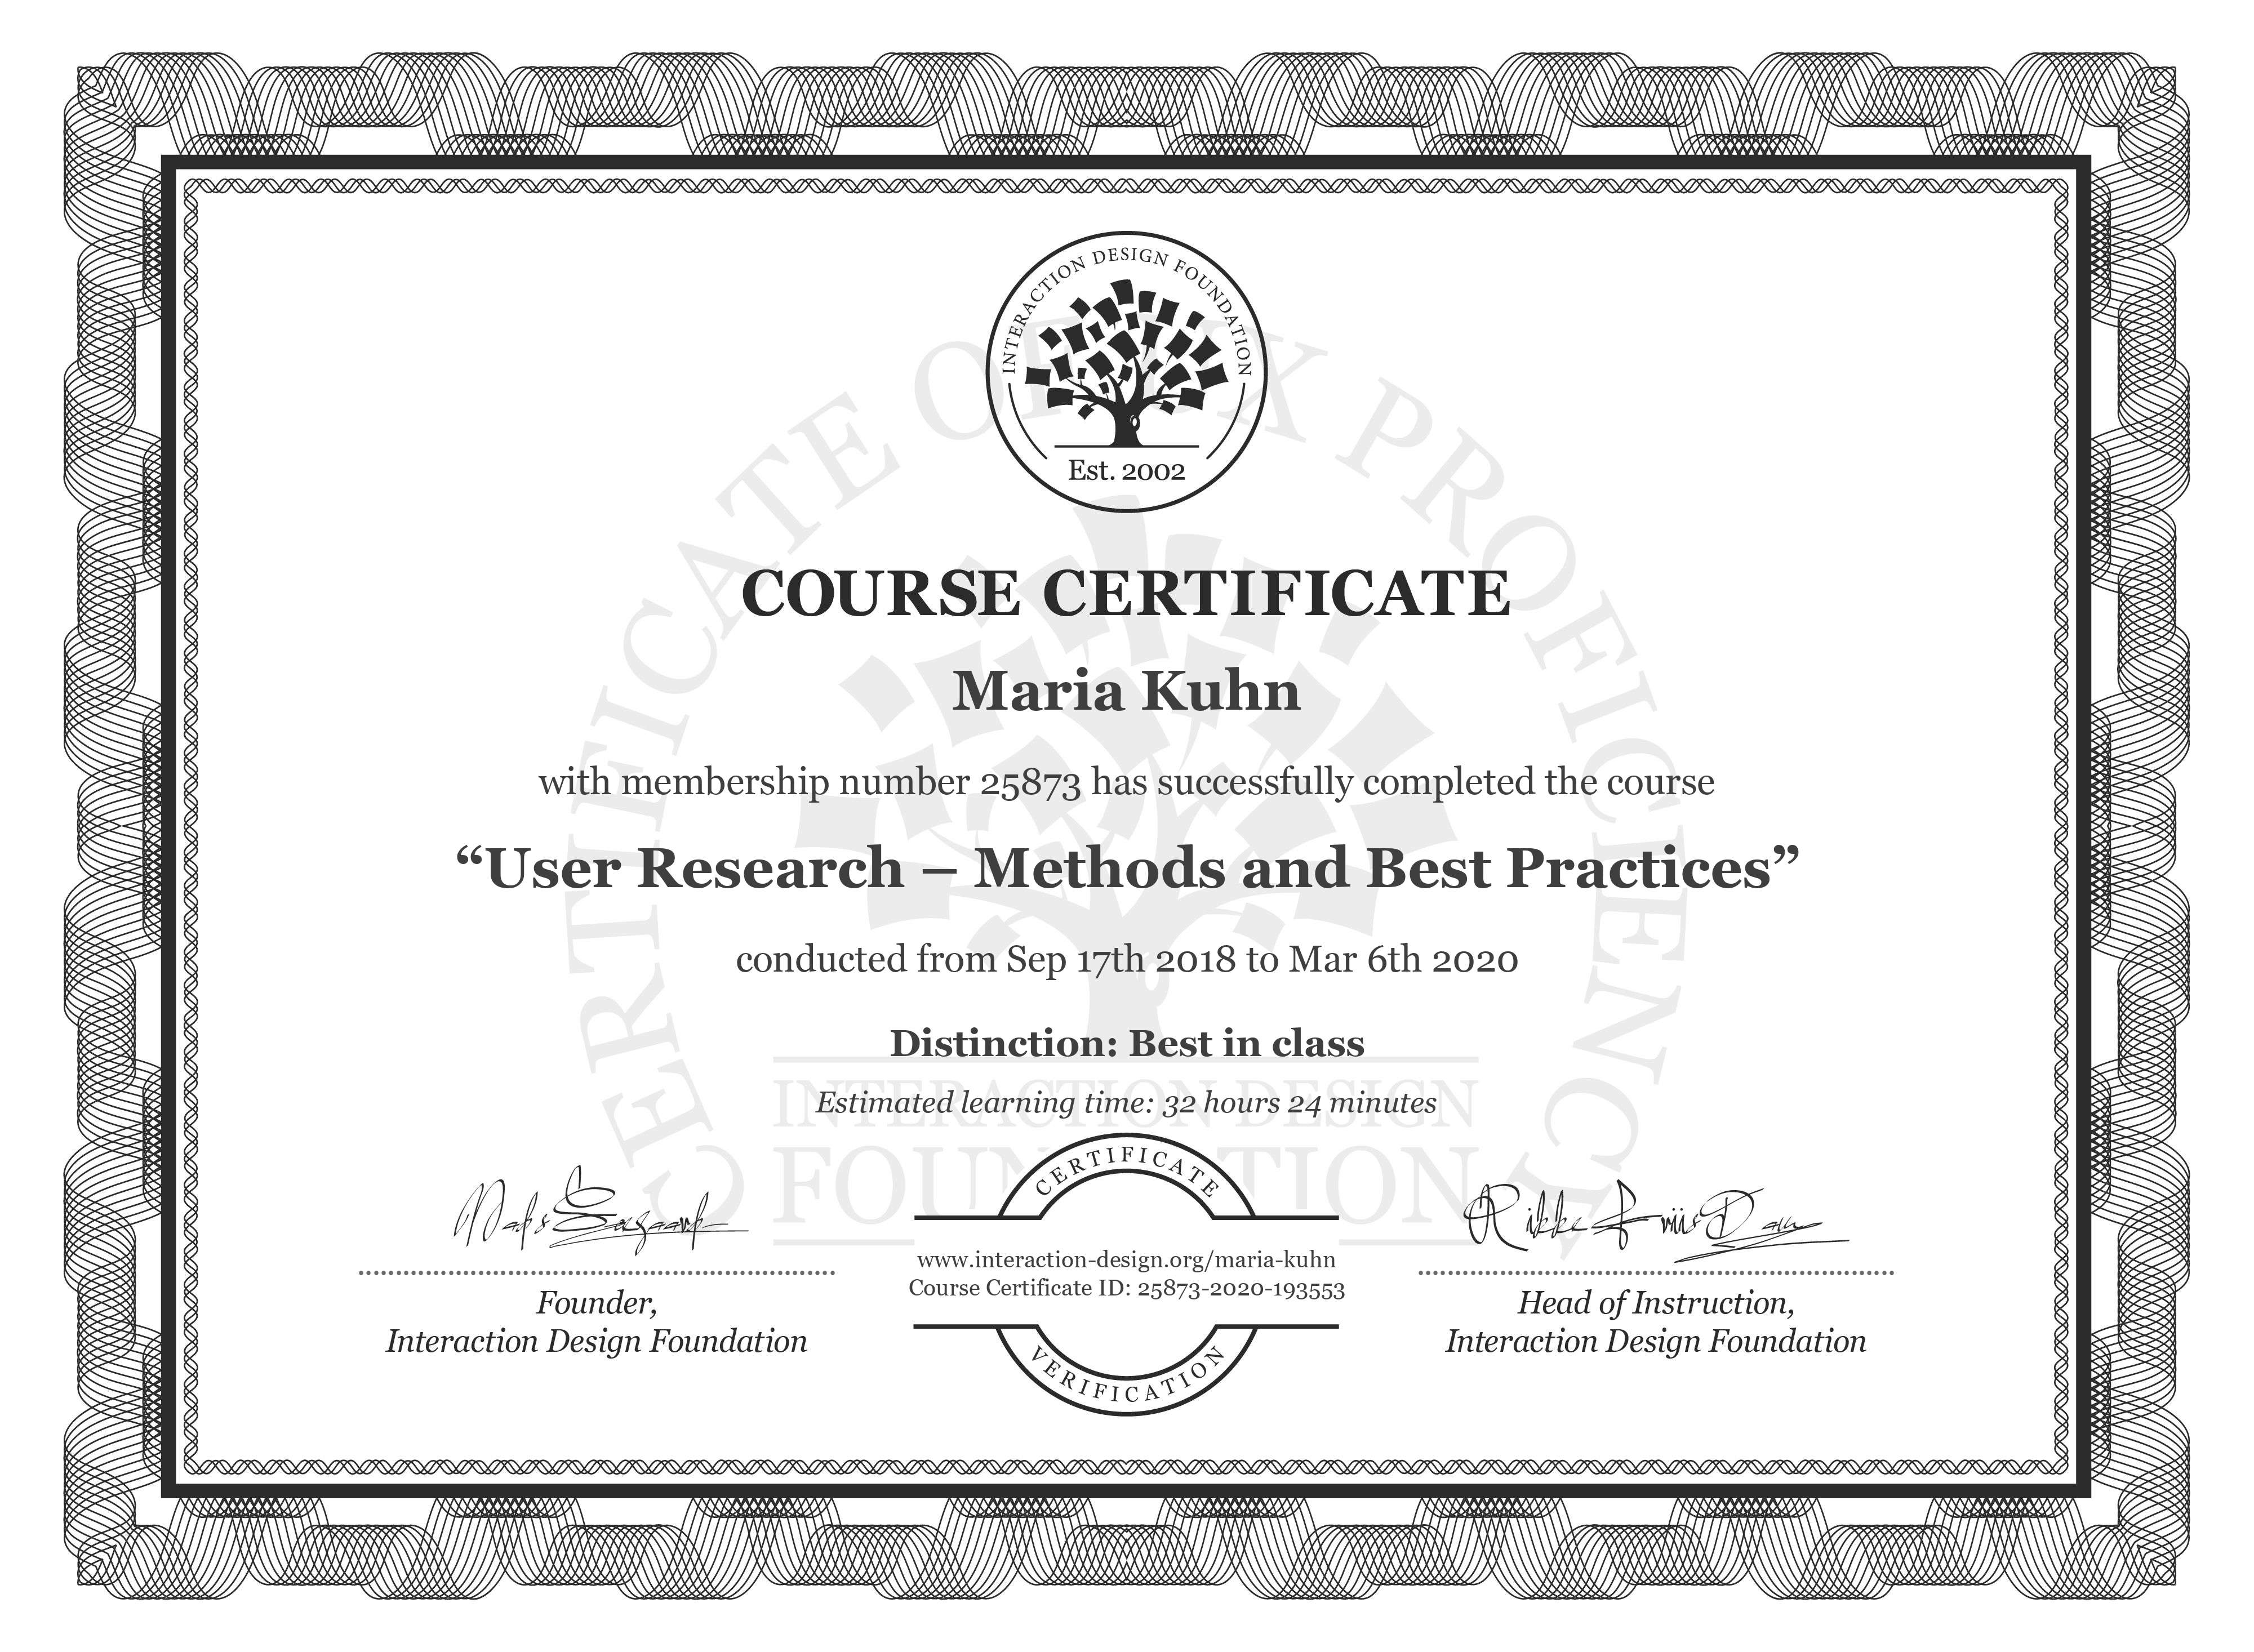 Maria Kuhn's Course Certificate: User Research – Methods and Best Practices